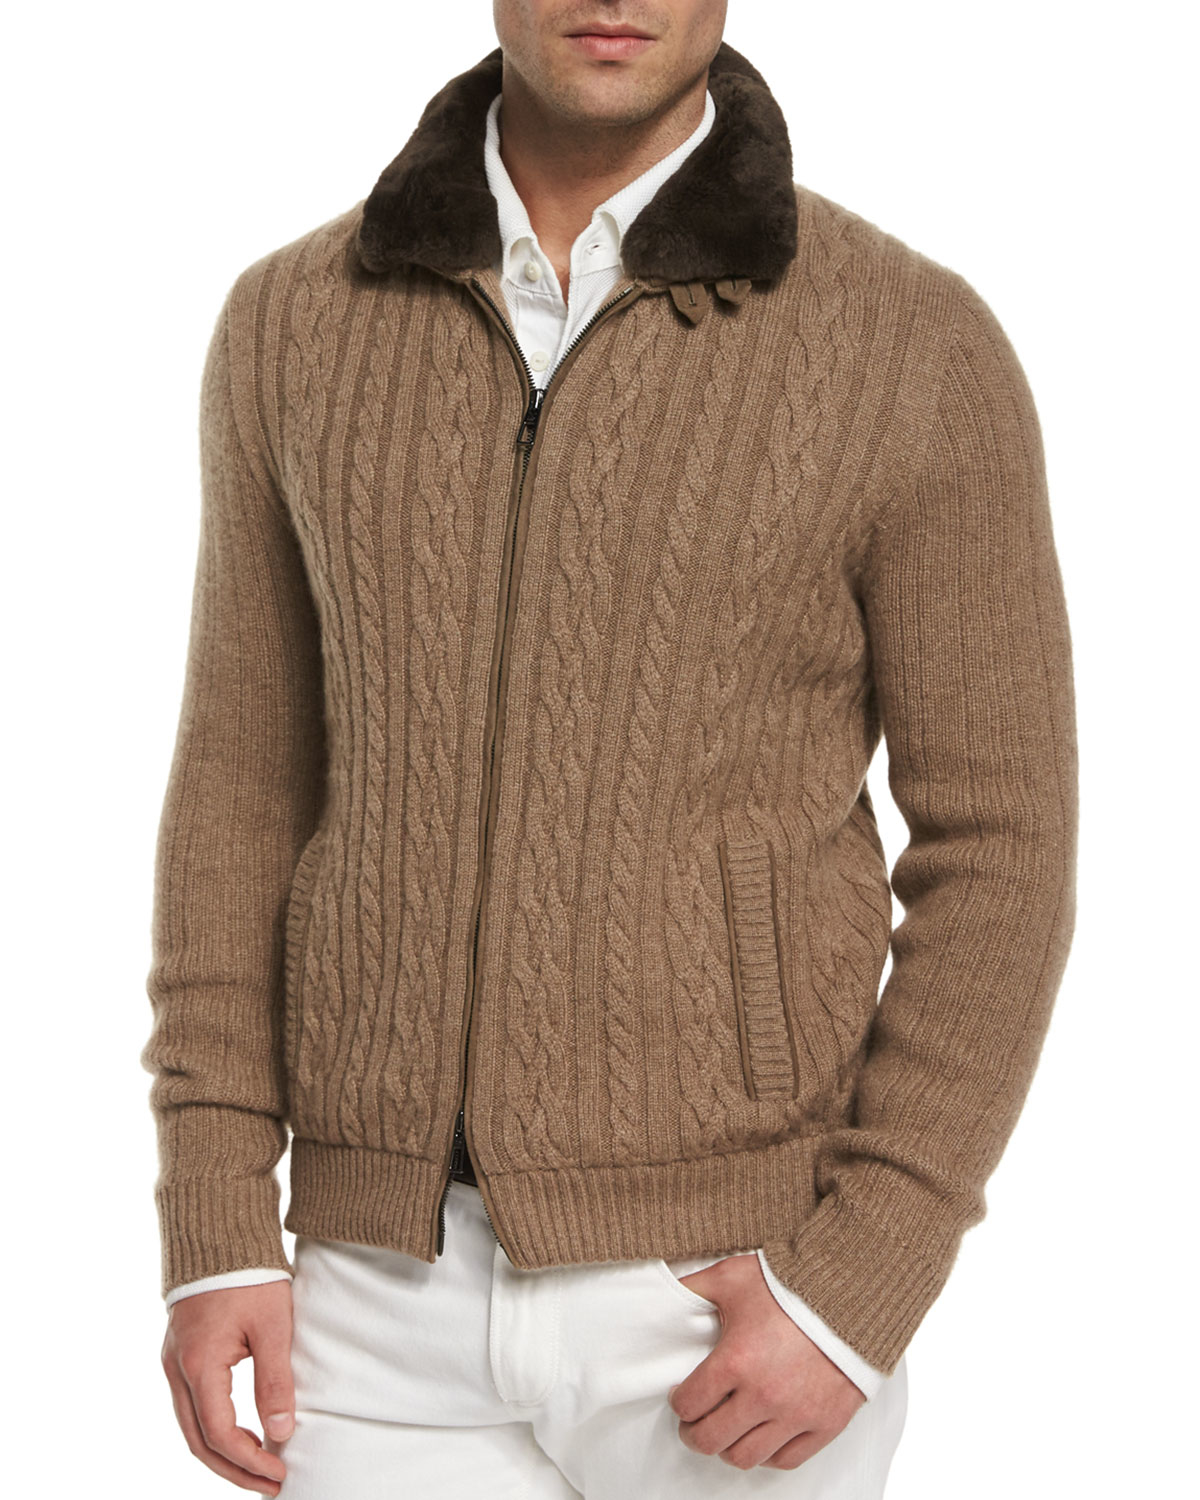 650625be6 Lyst - Loro Piana Cable-knit Cashmere Bomber Jacket in Brown for Men